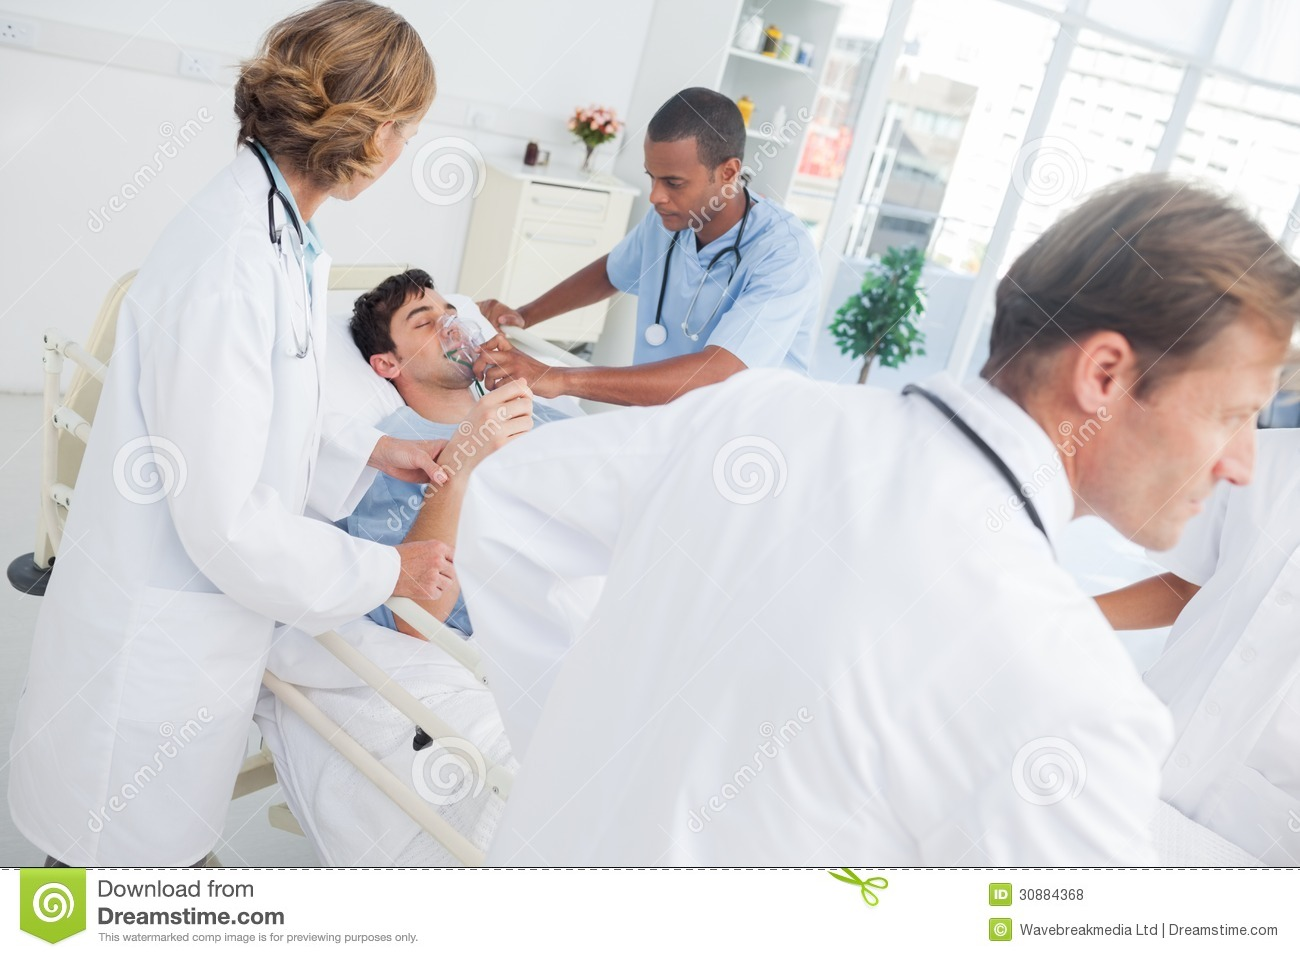 Sick Patient Pic : Doctors taking care of a sick patient lying in his sickbed.